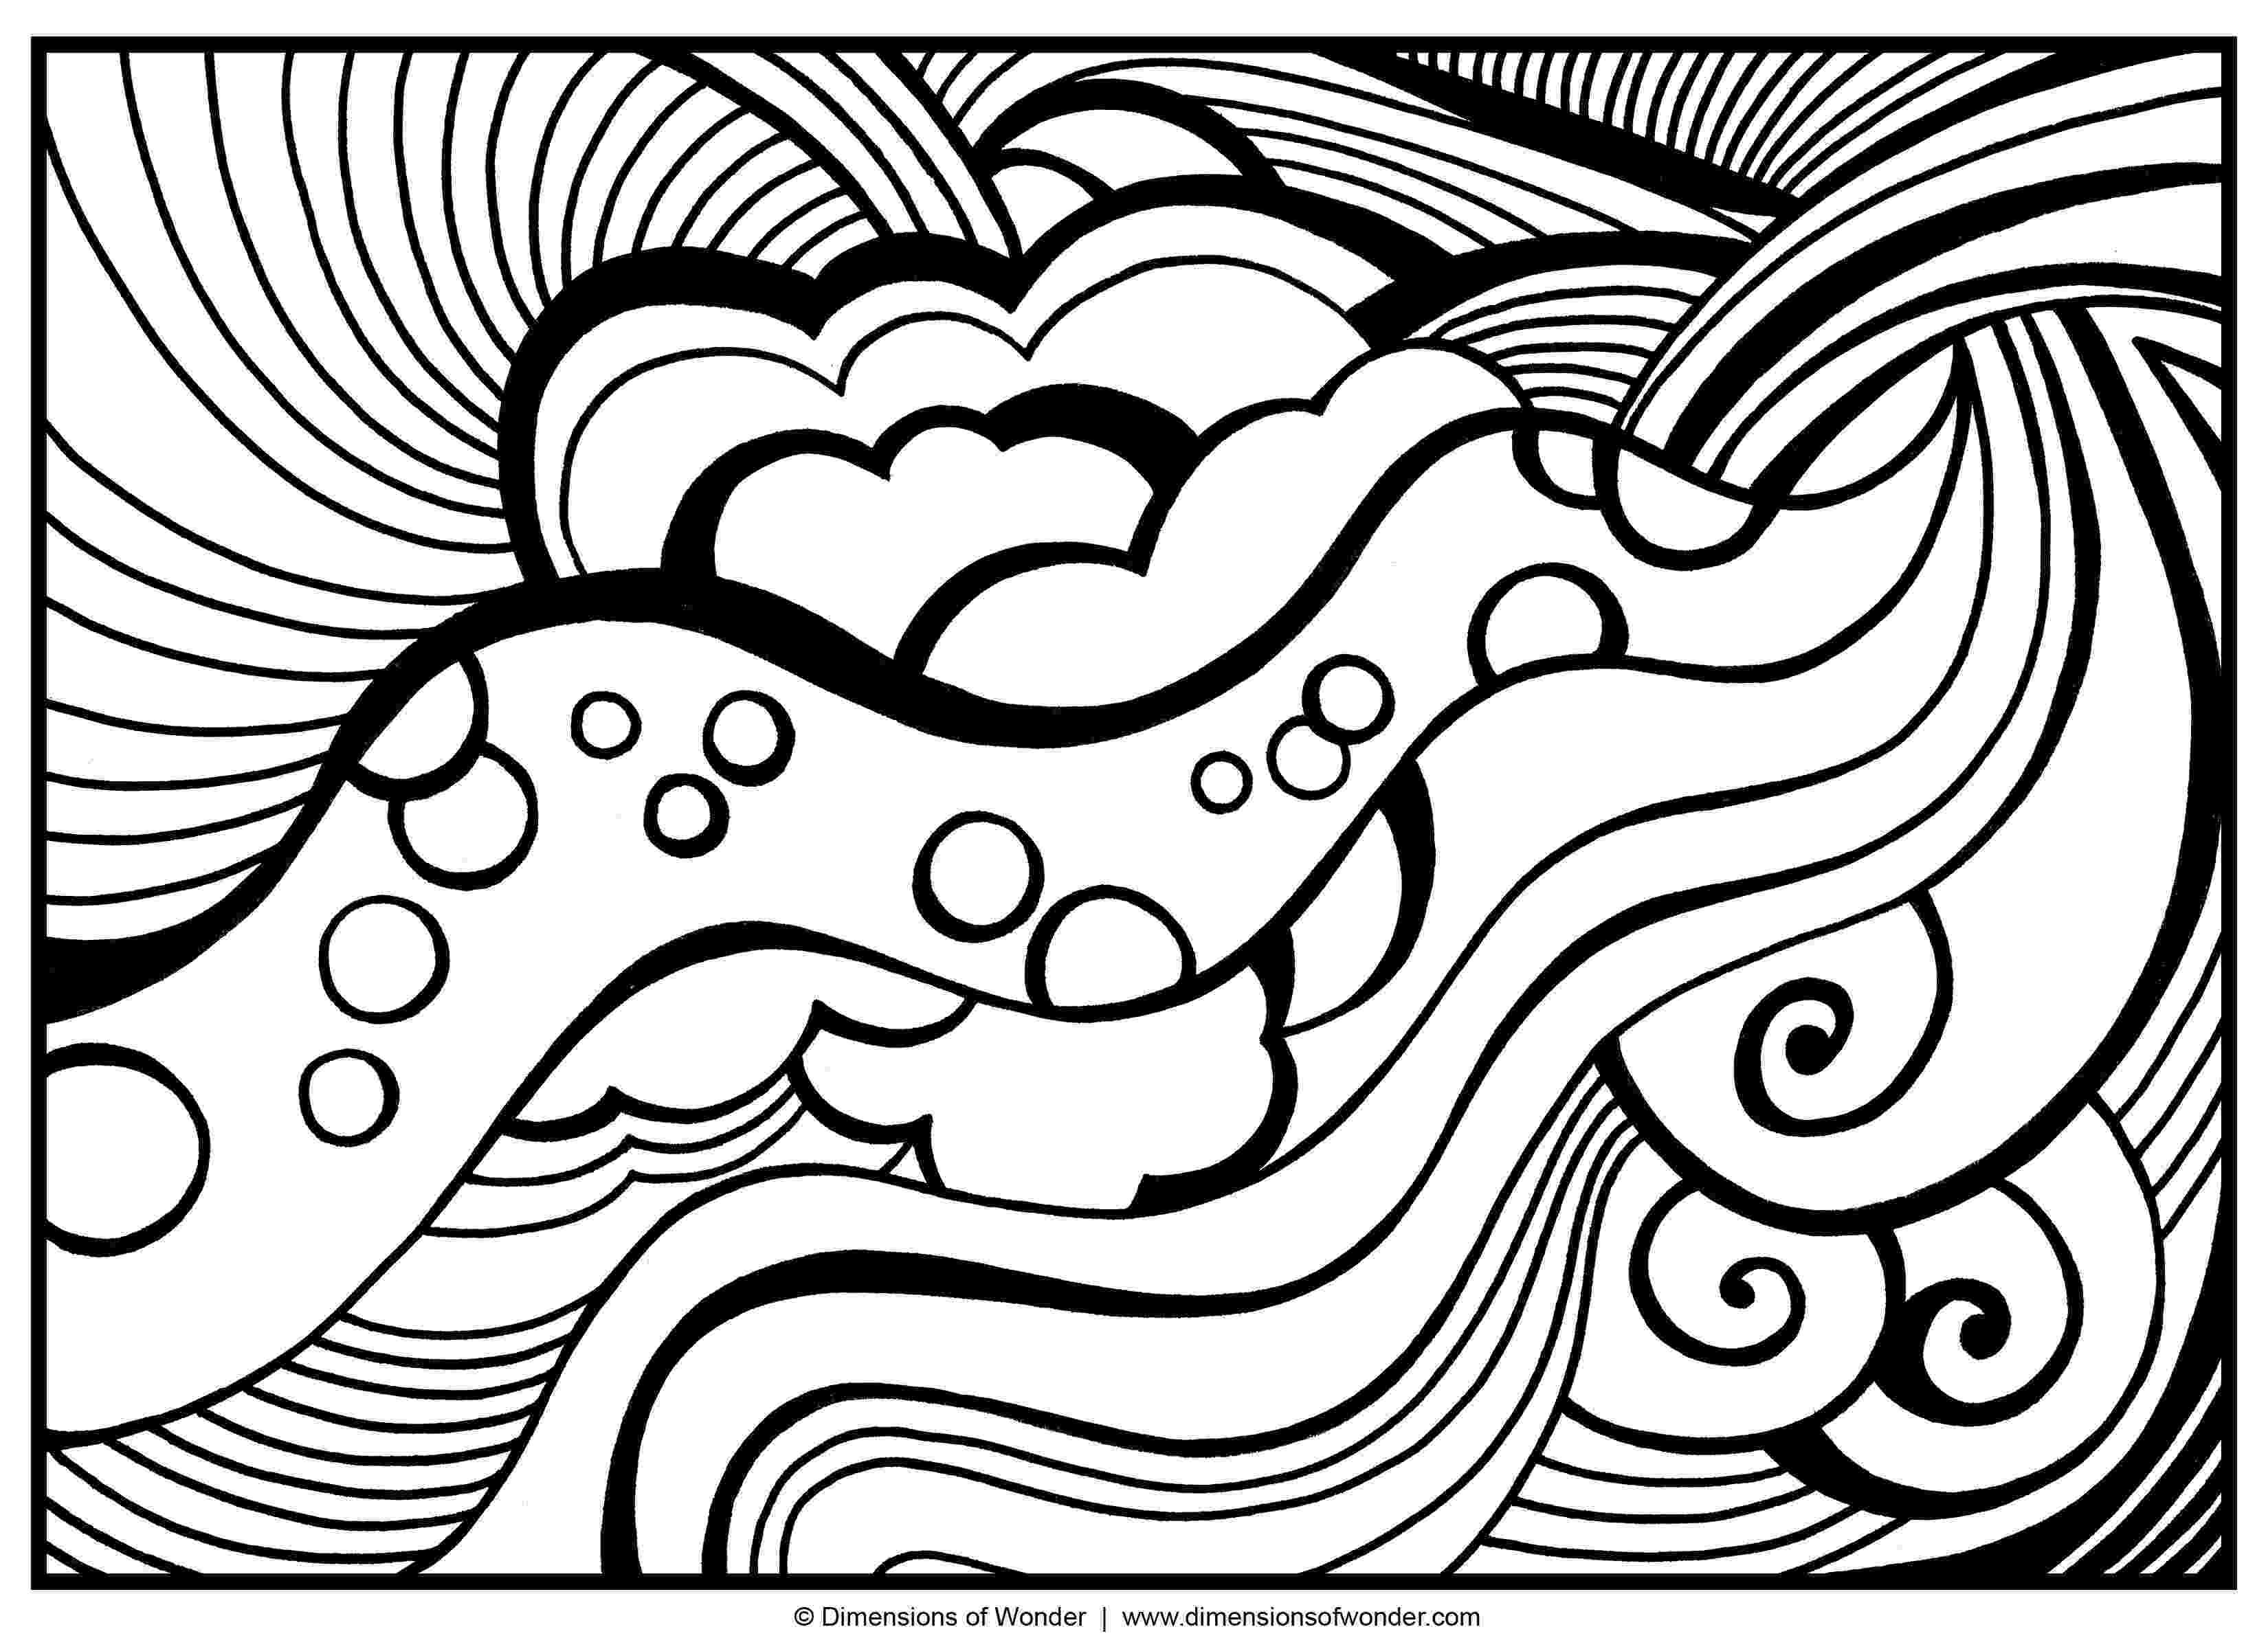 free abstract coloring pages abstract coloring pages free large images recipes free coloring abstract pages